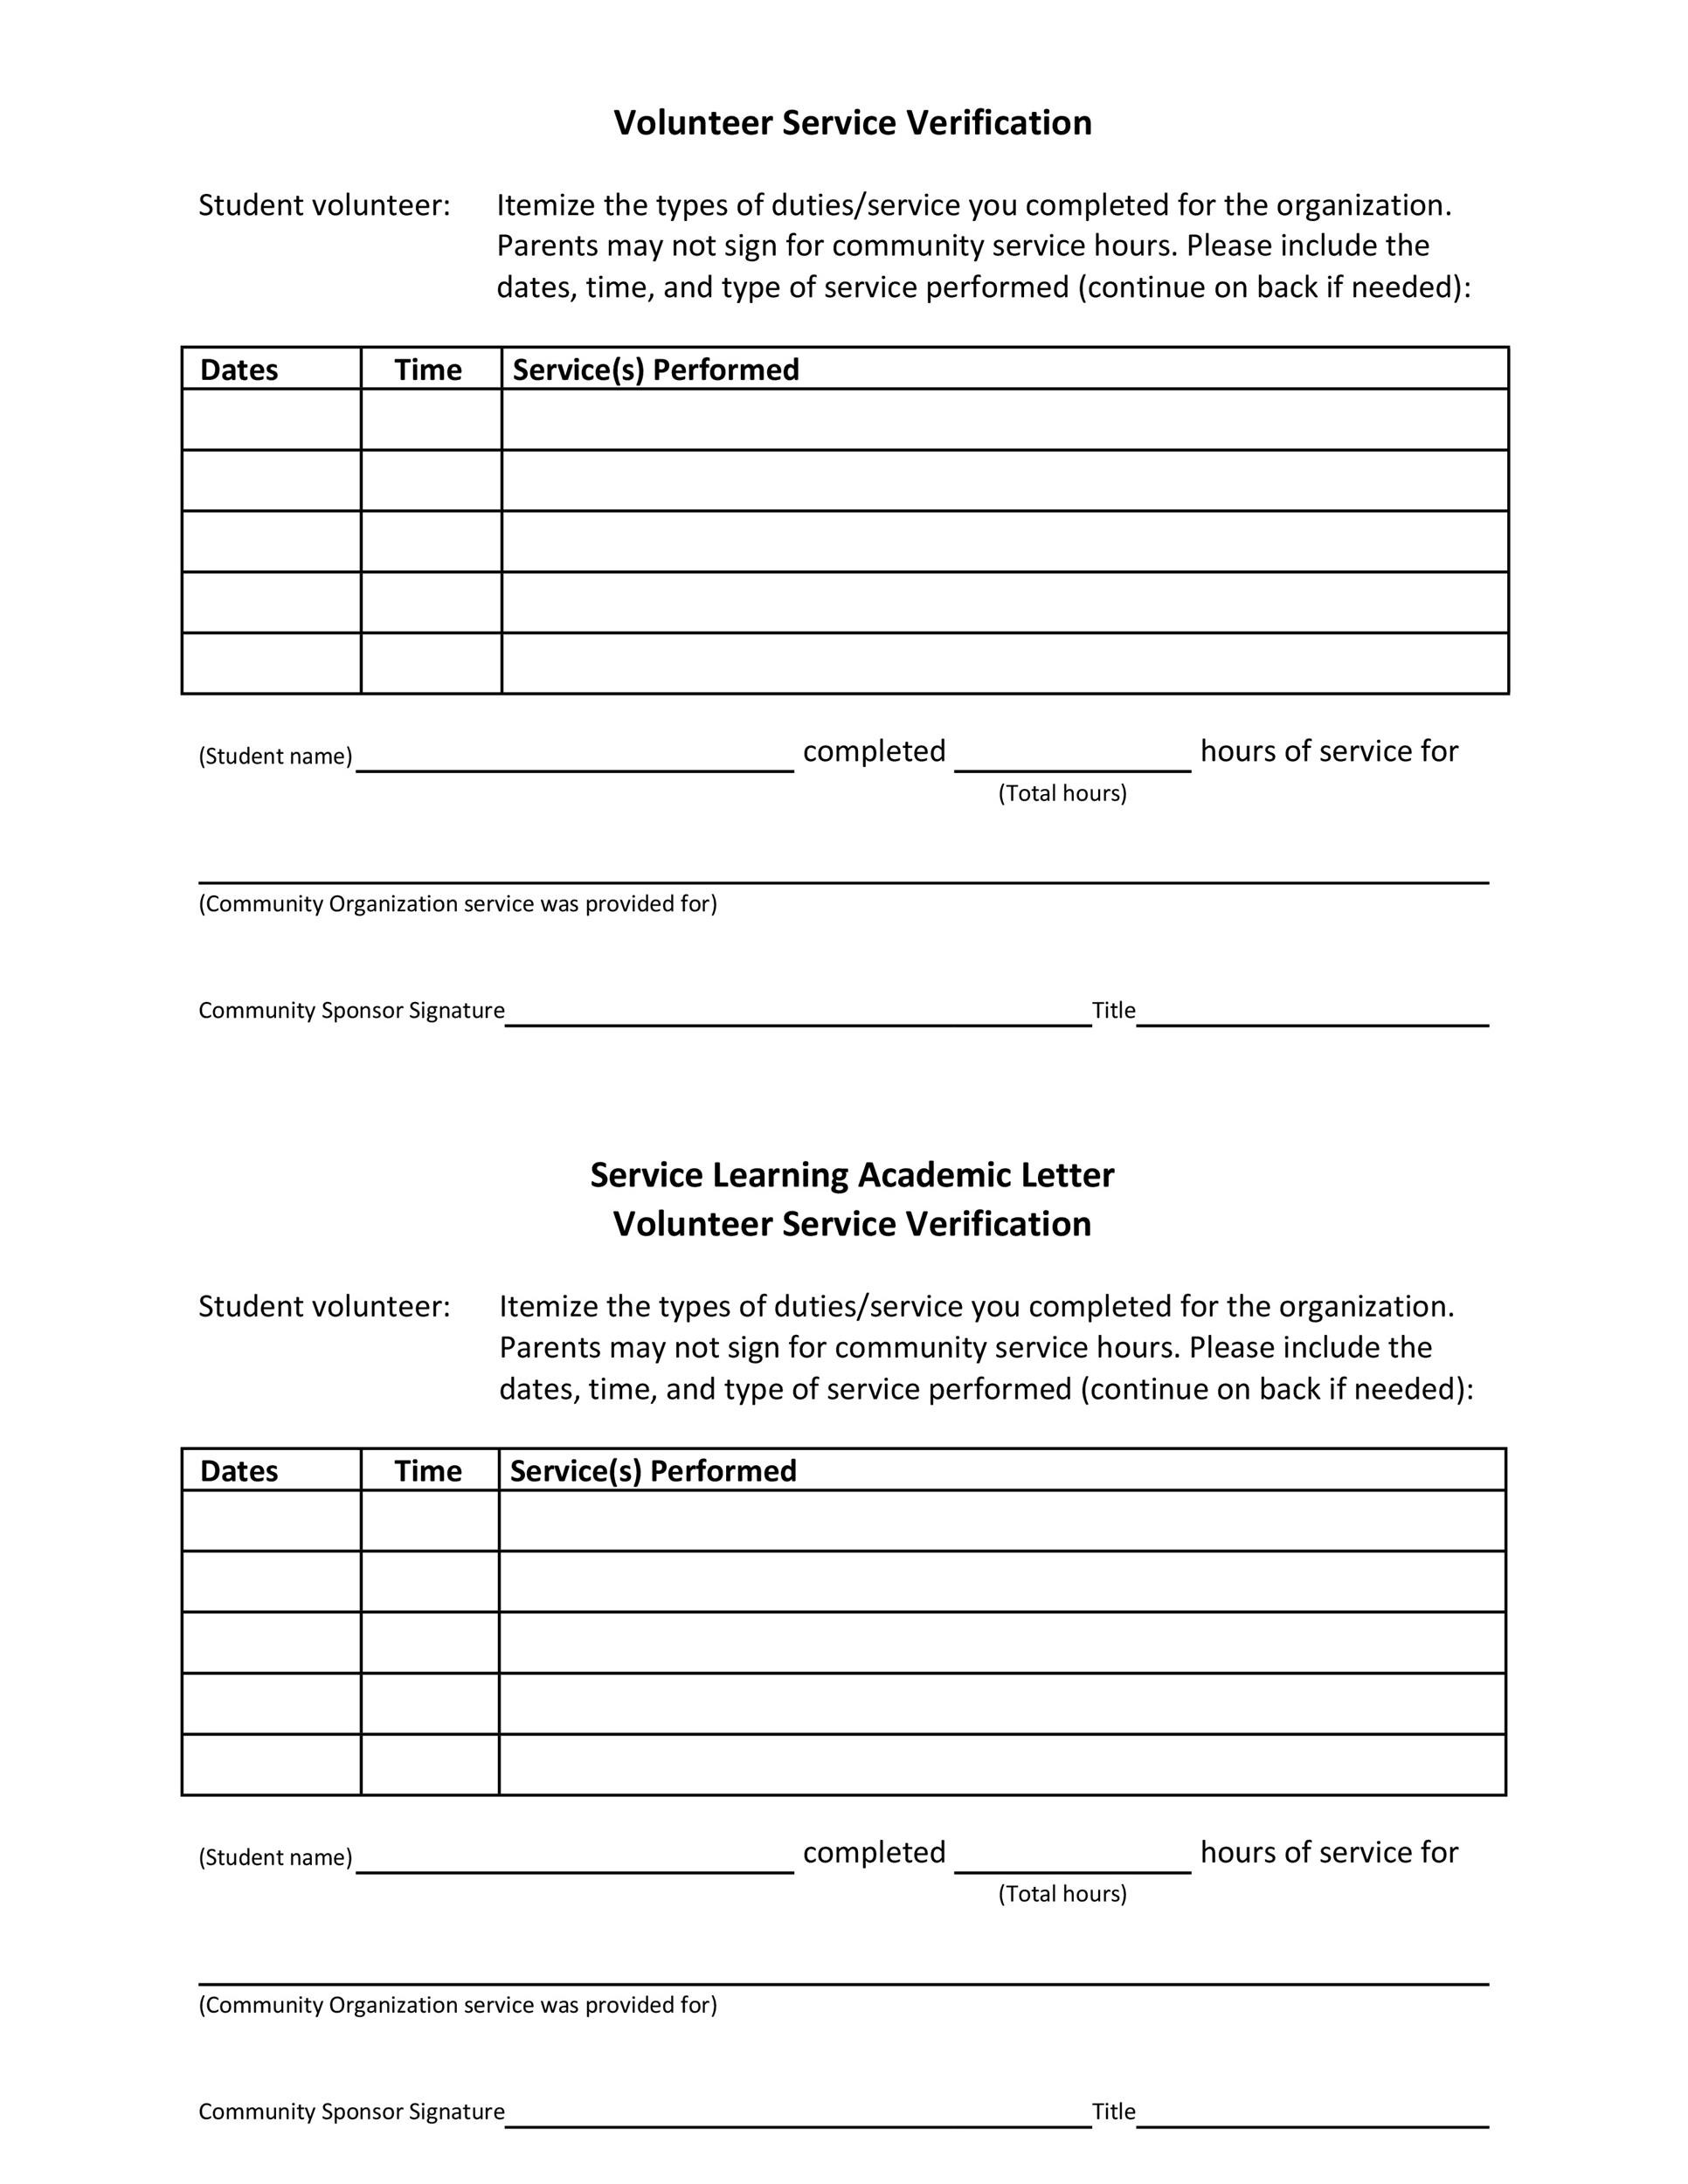 community service completion letter example community service letter 40 templates completion 22171 | community service letter template 03